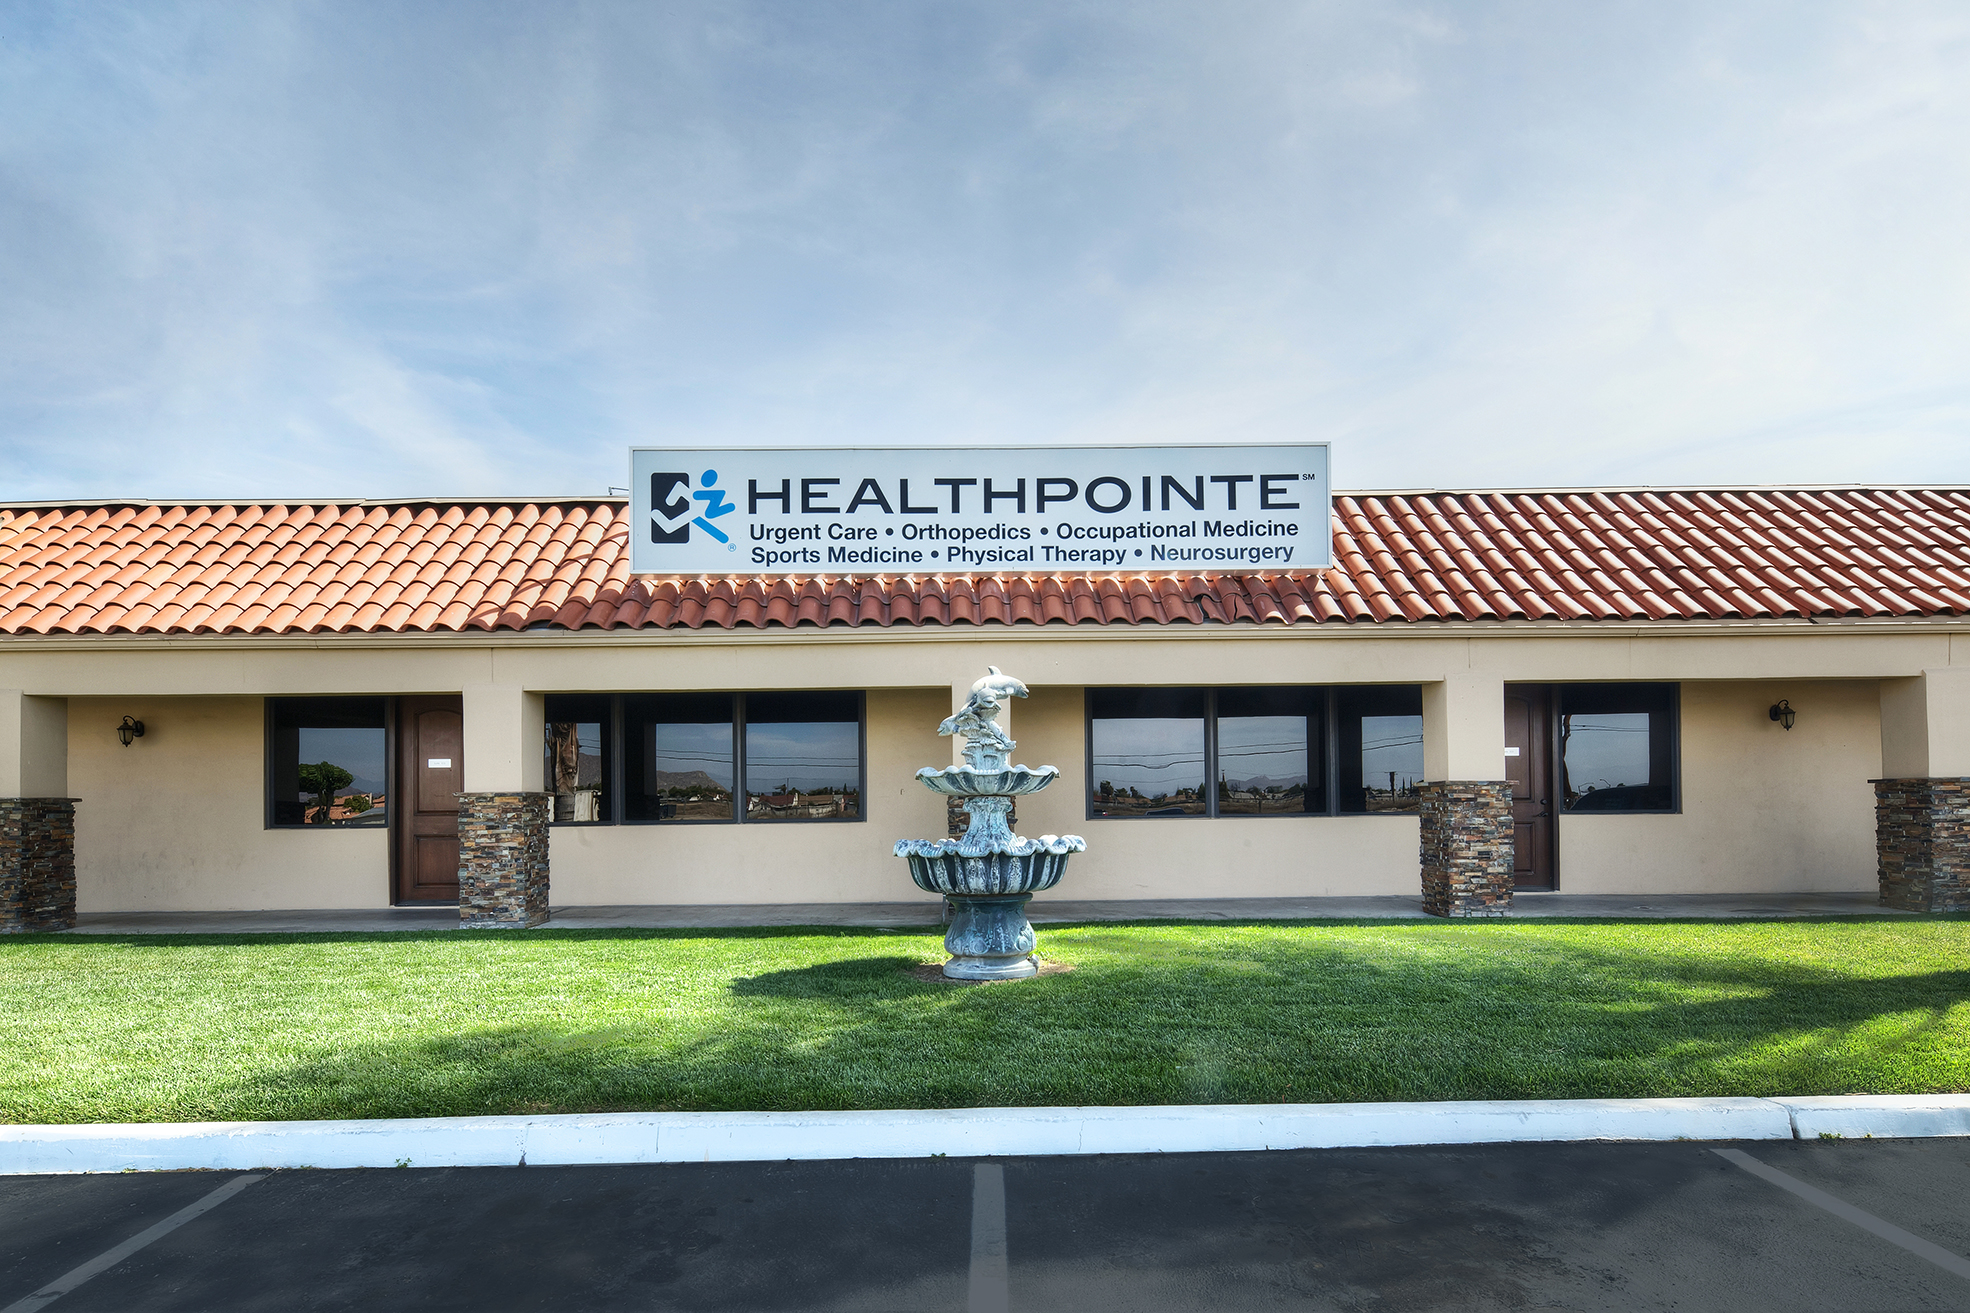 Healthpointe reviews | Medical Centers at 2226 Medical Center Dr - Perris CA